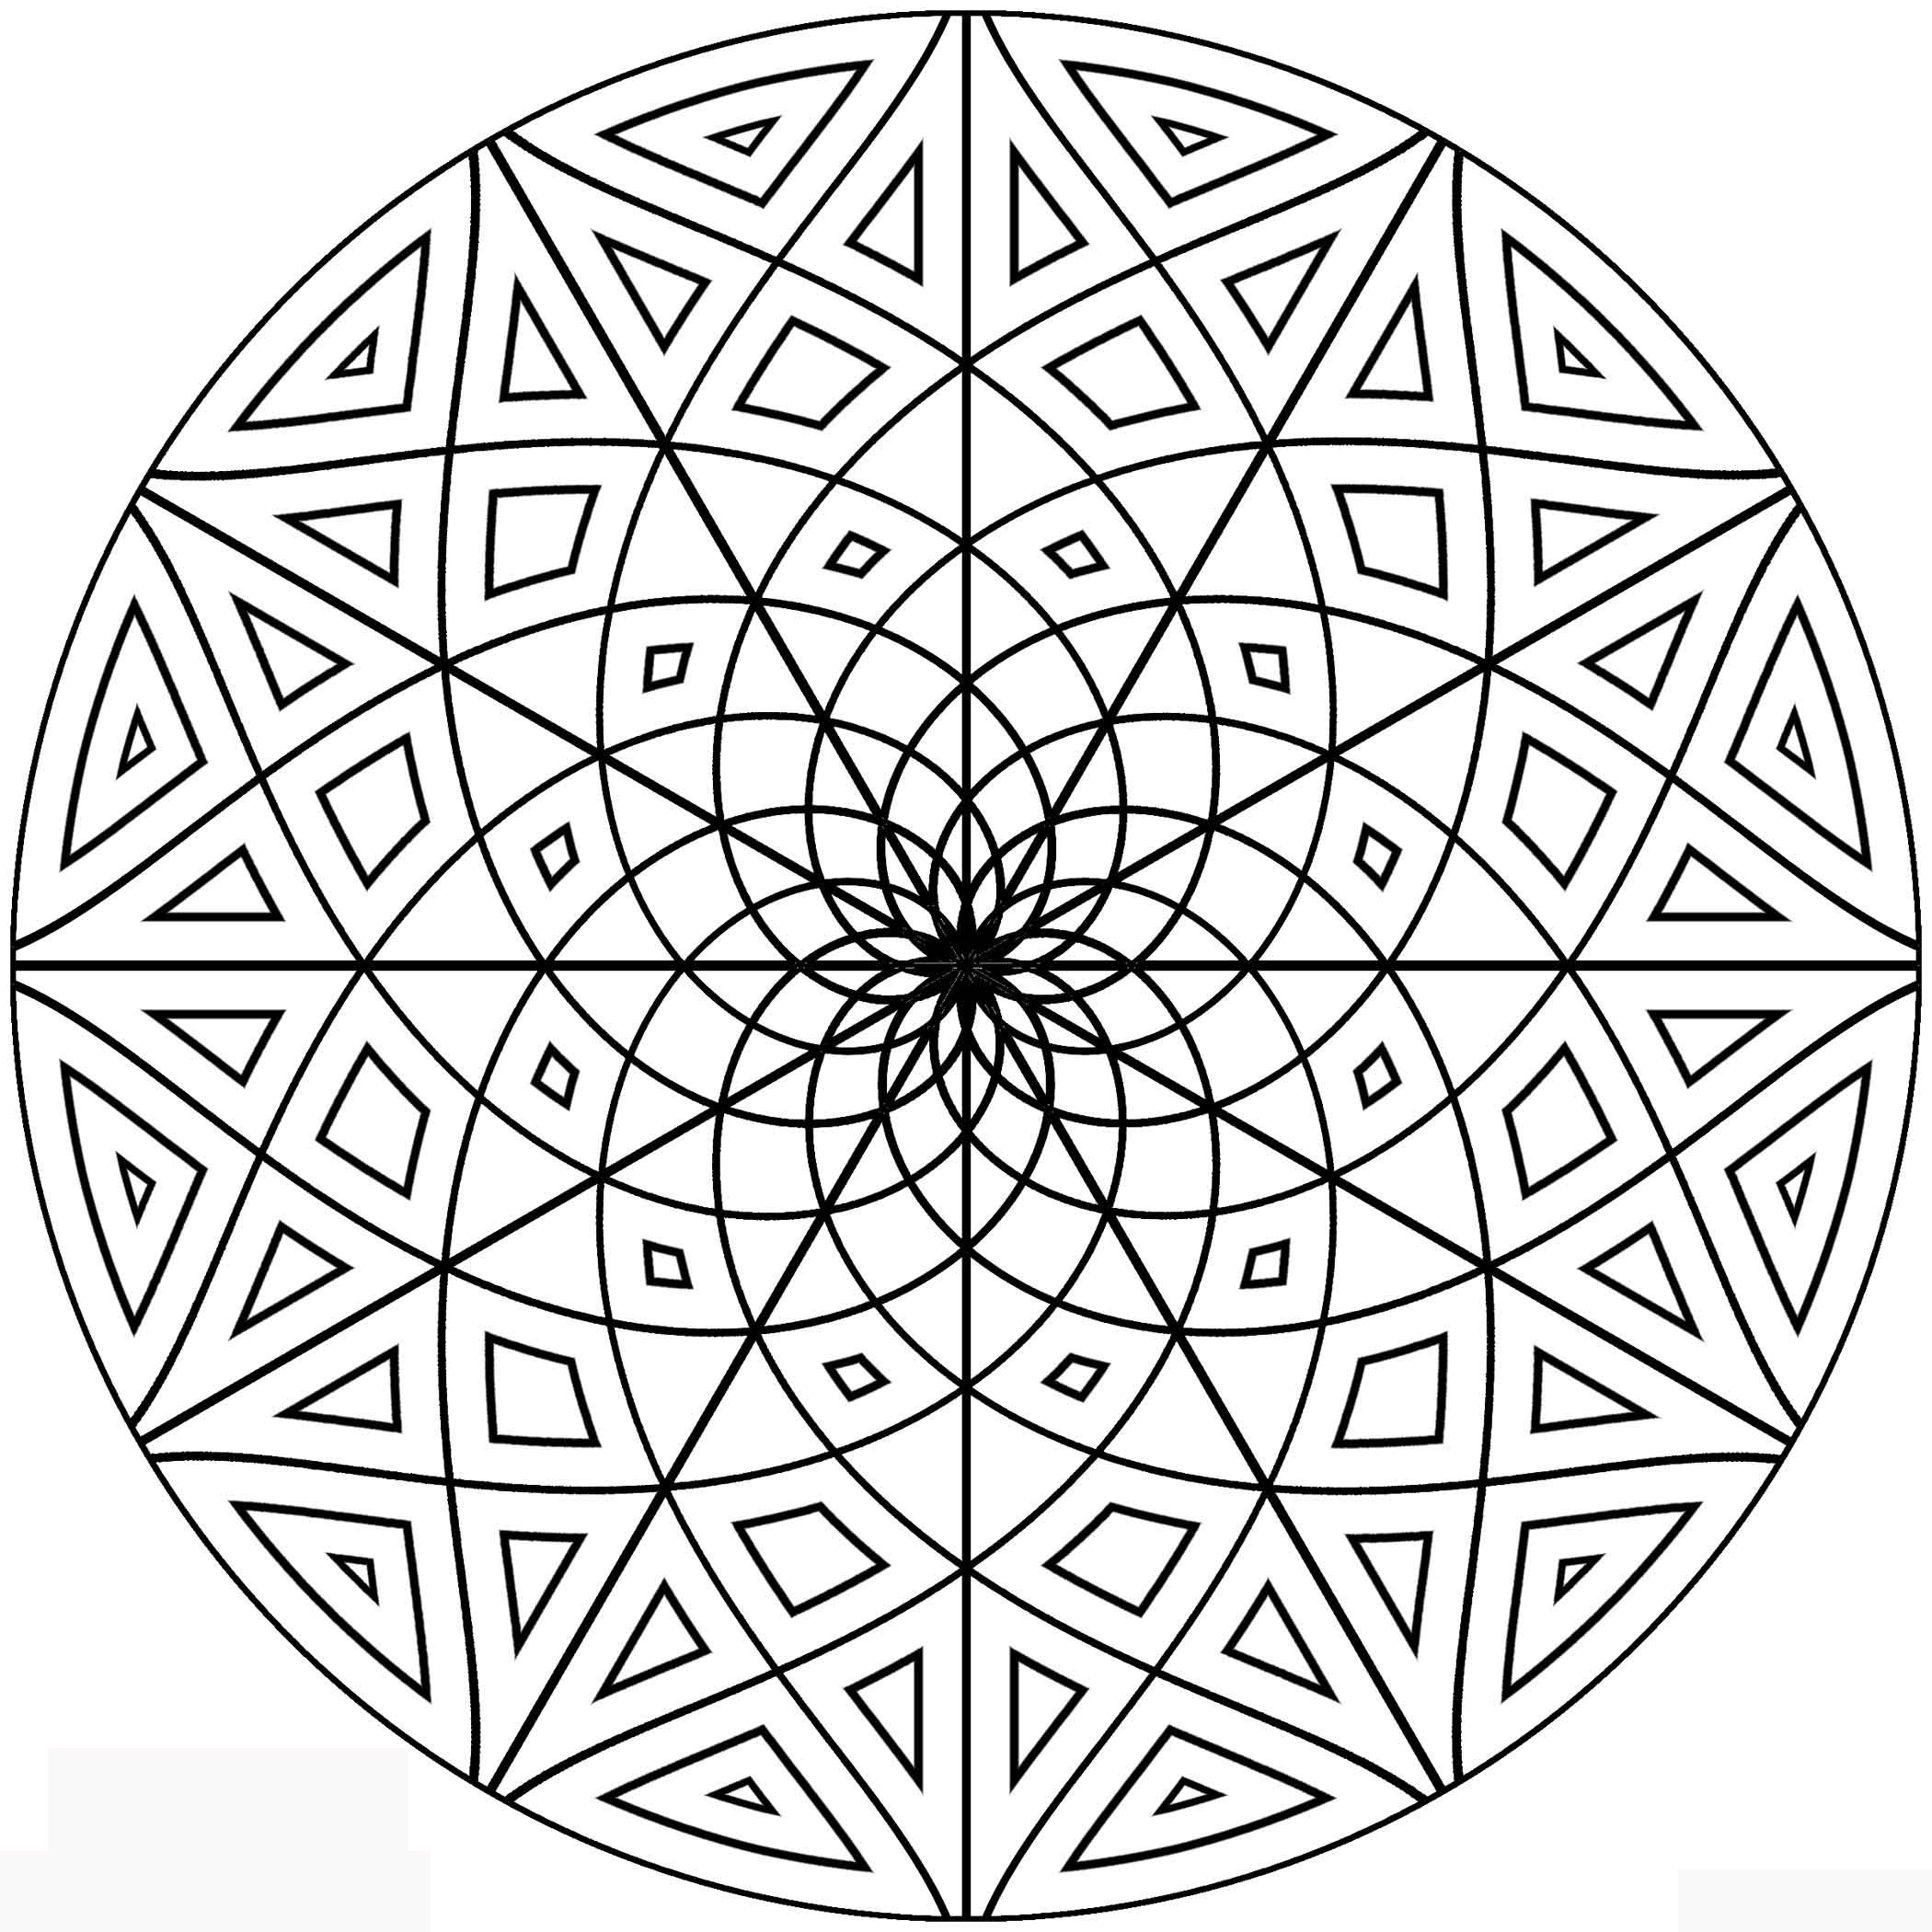 Best ideas about Geometric Coloring Pages For Adults . Save or Pin Free Printable Geometric Coloring Pages For Kids Now.